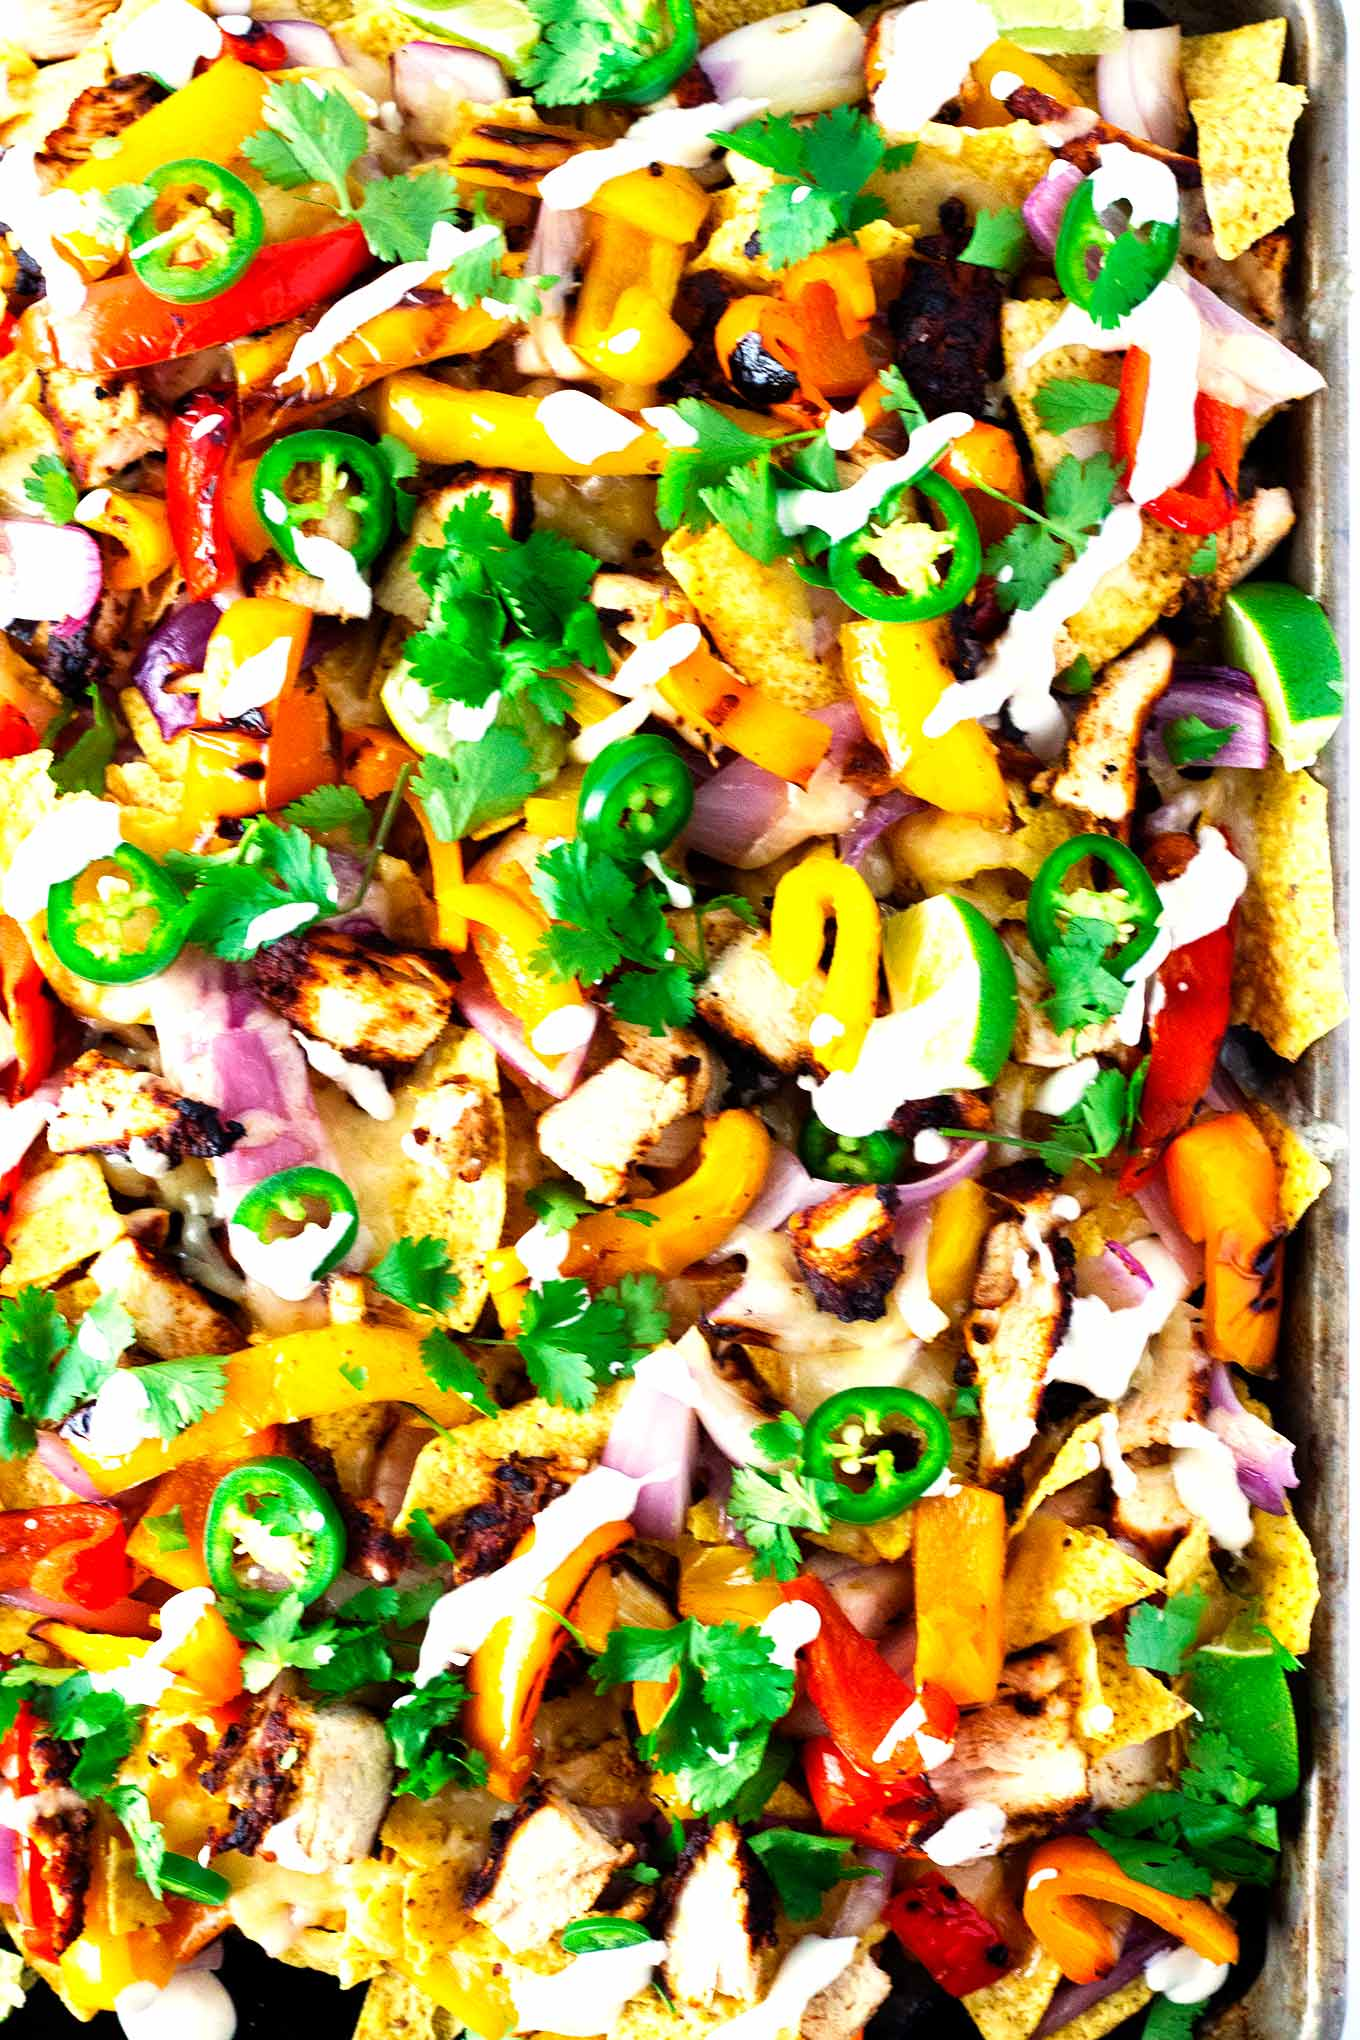 These grilled chicken fajita nachos are beyond delish! Chicken, peppers, and onions all grilled to perfection then topped on top of tortilla chips with cheese and optional toppings have these nachos out of this world!